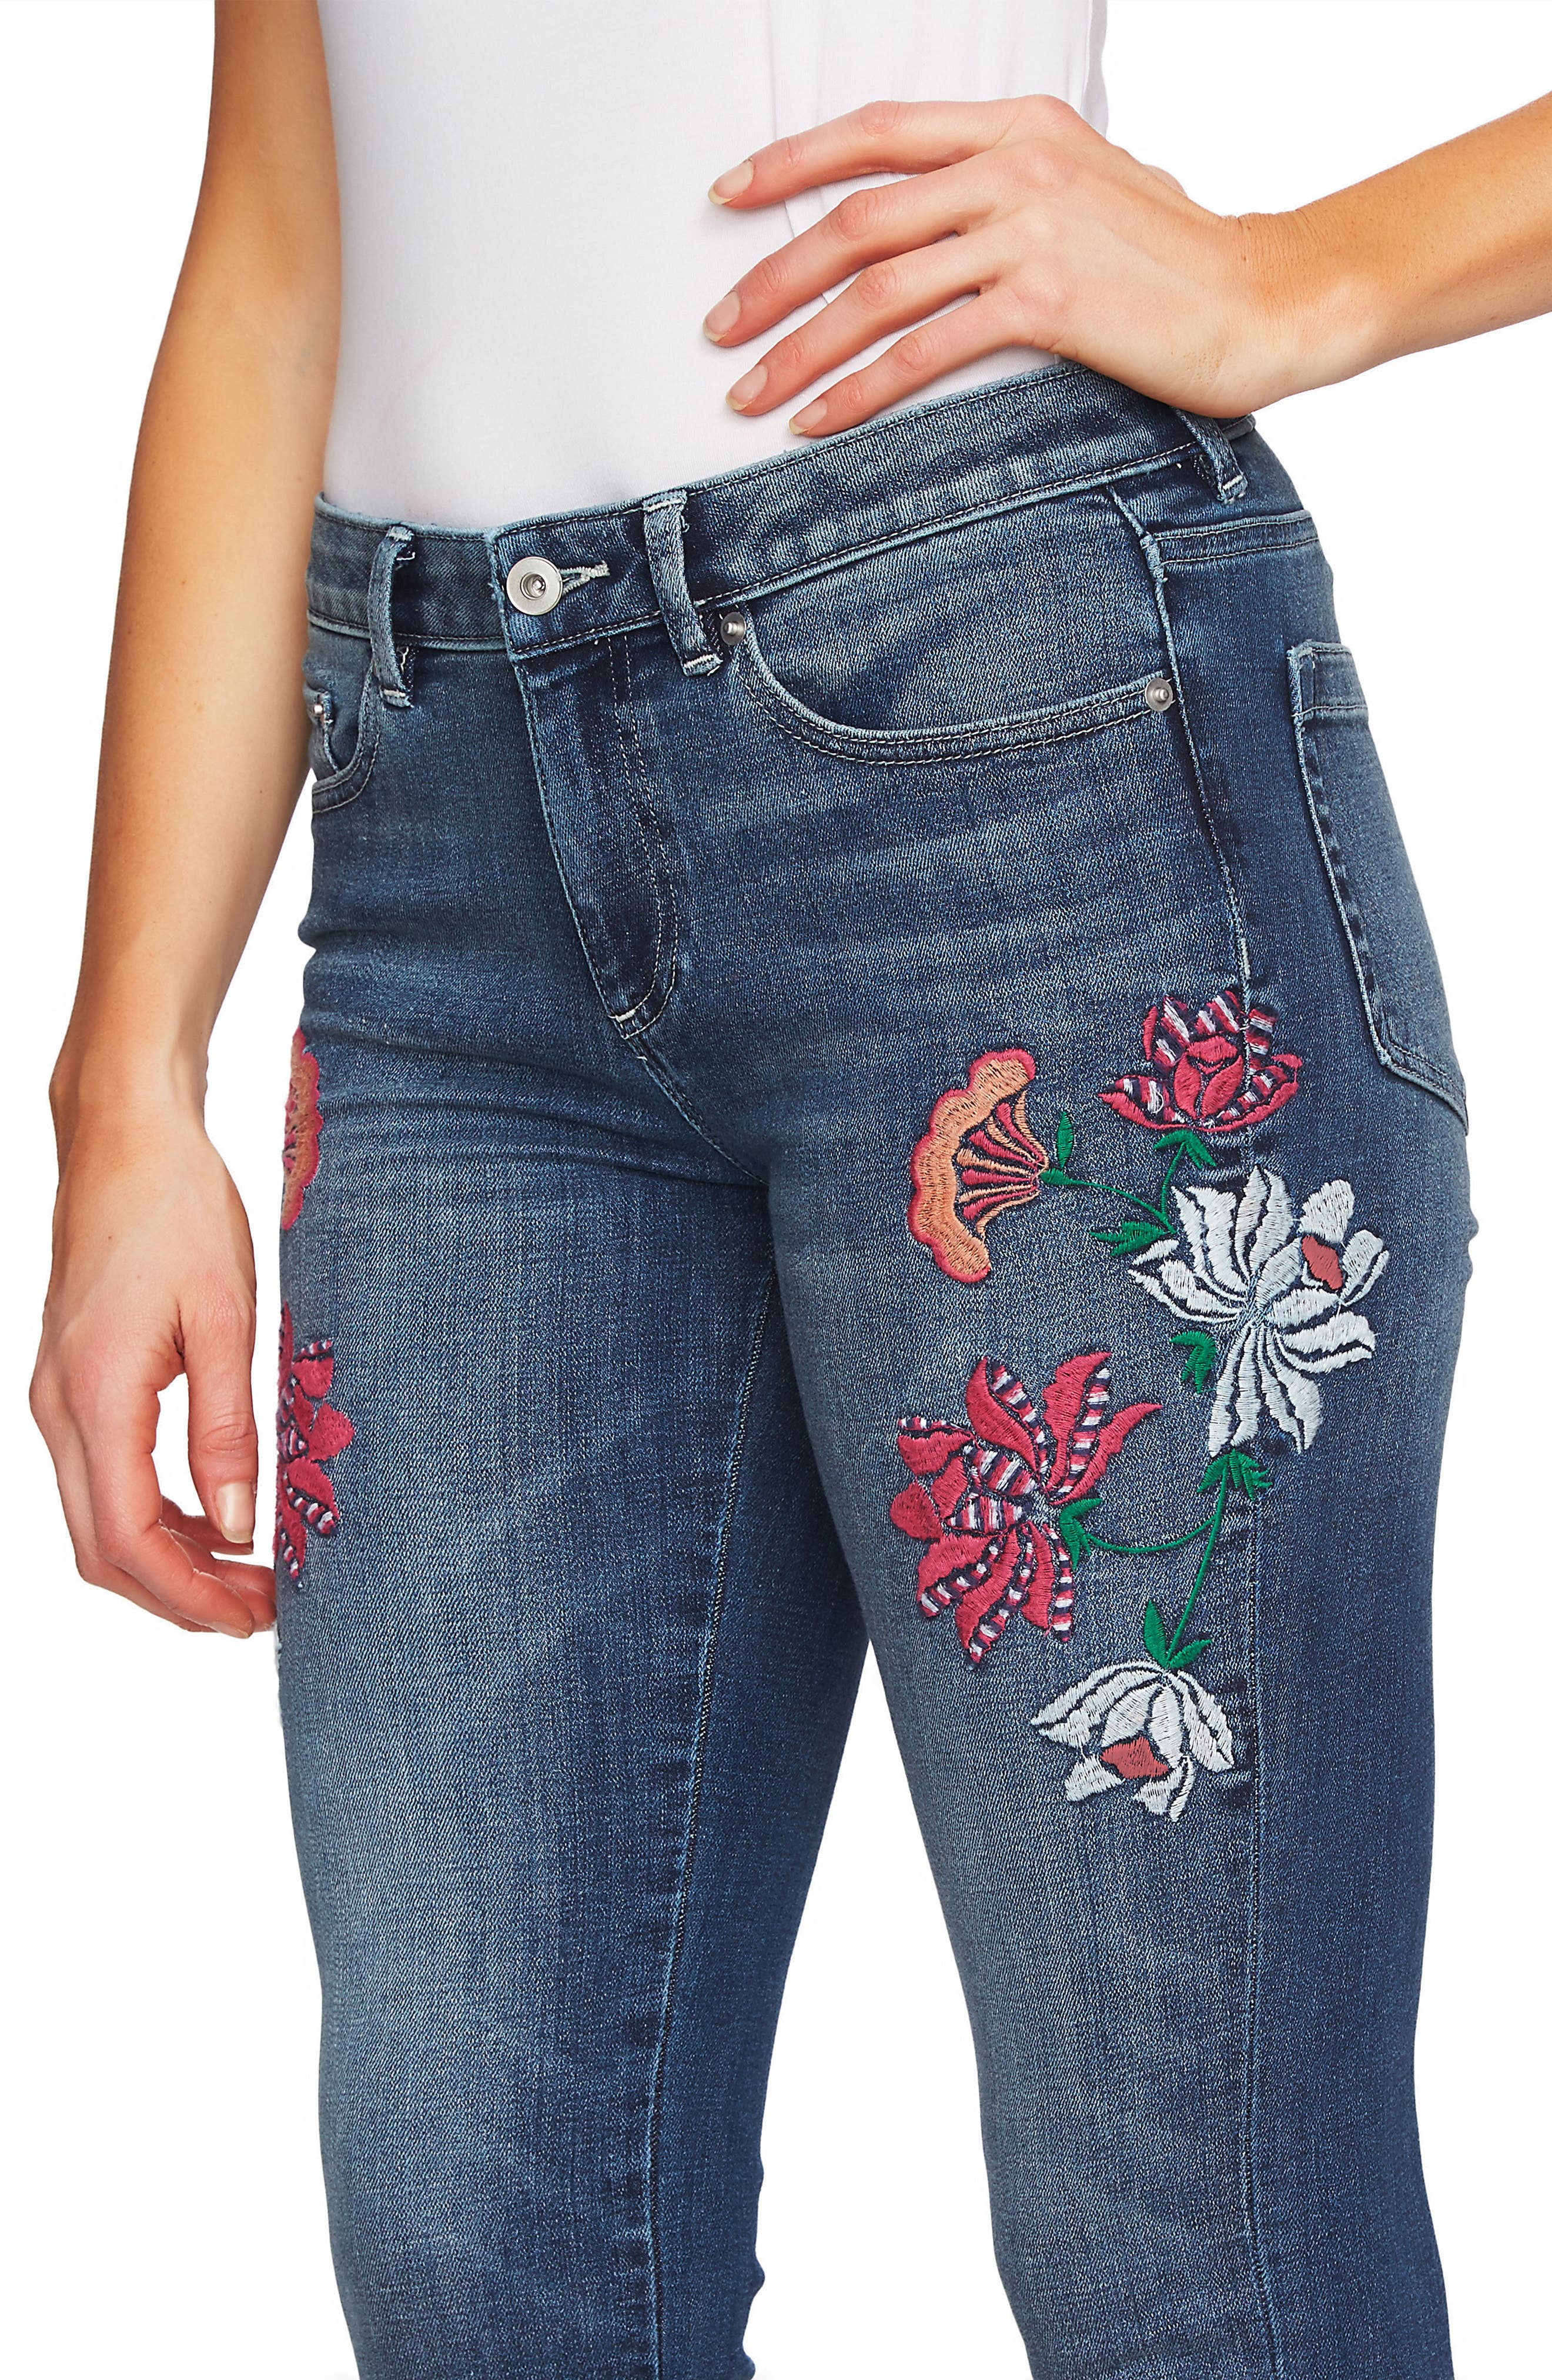 Floral Embroidery Skinny Jeans,                             Alternate thumbnail 4, color,                             True Blue